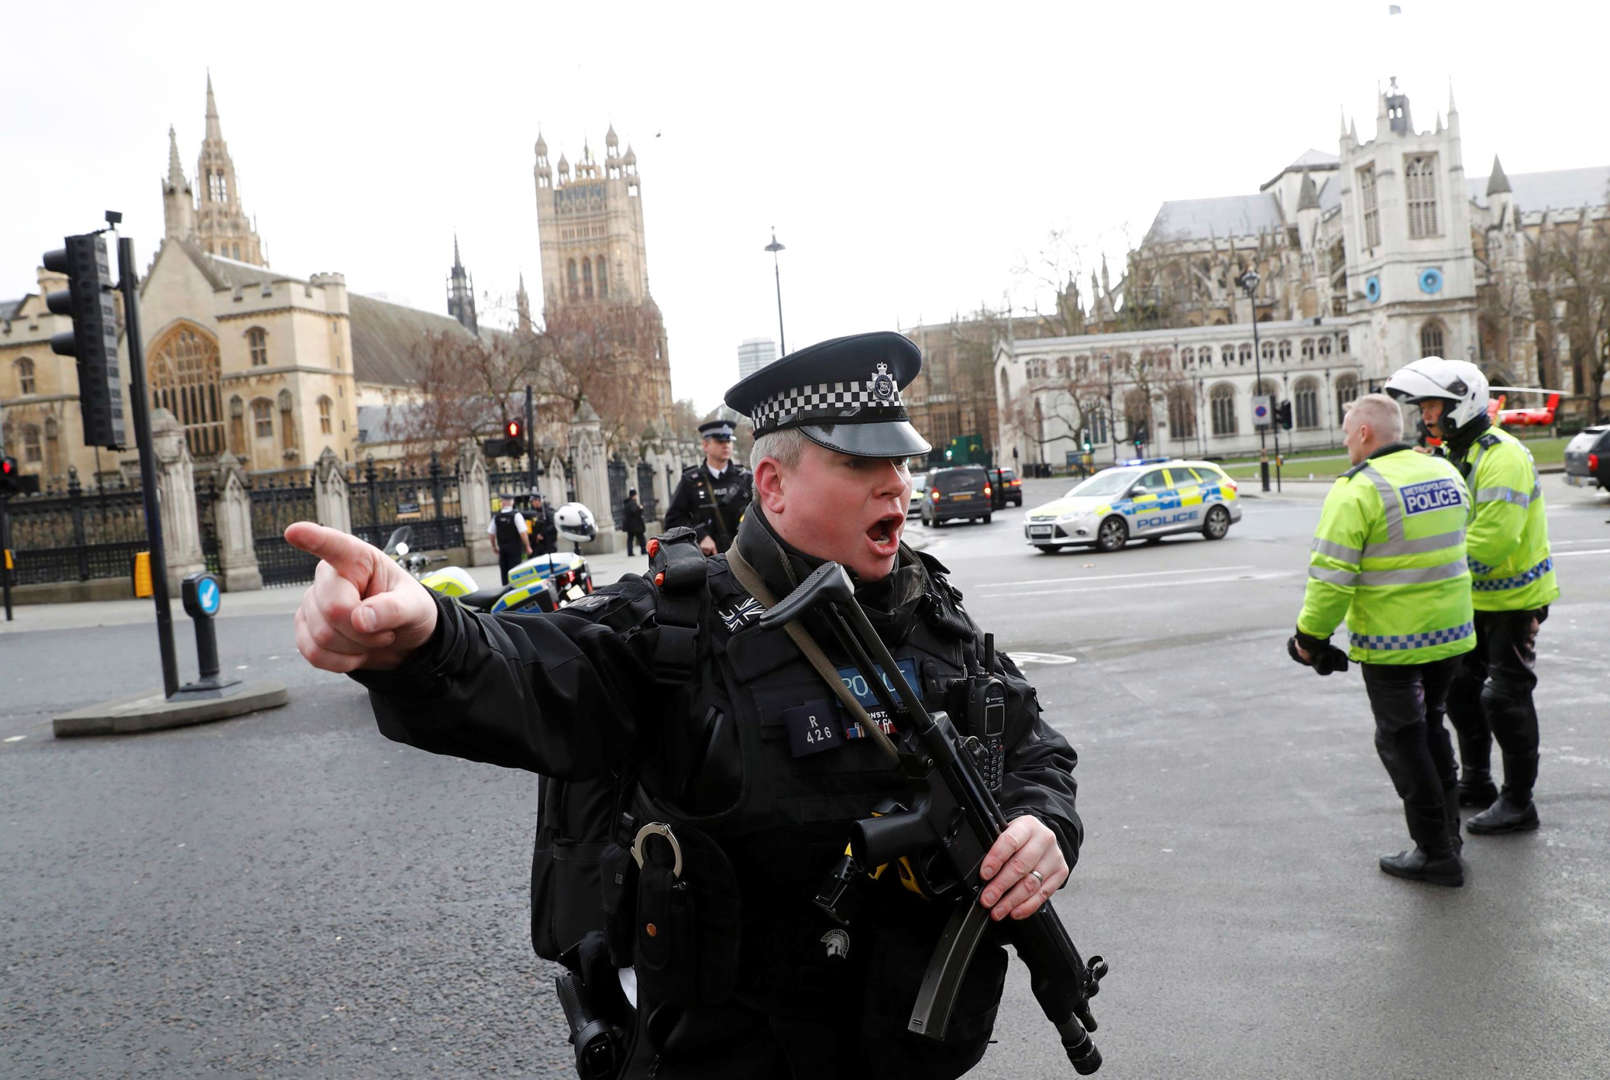 Slide 1 of 17: Armed police respond outside Parliament during an incident on Westminster Bridge in London, Britain March 22, 2017.